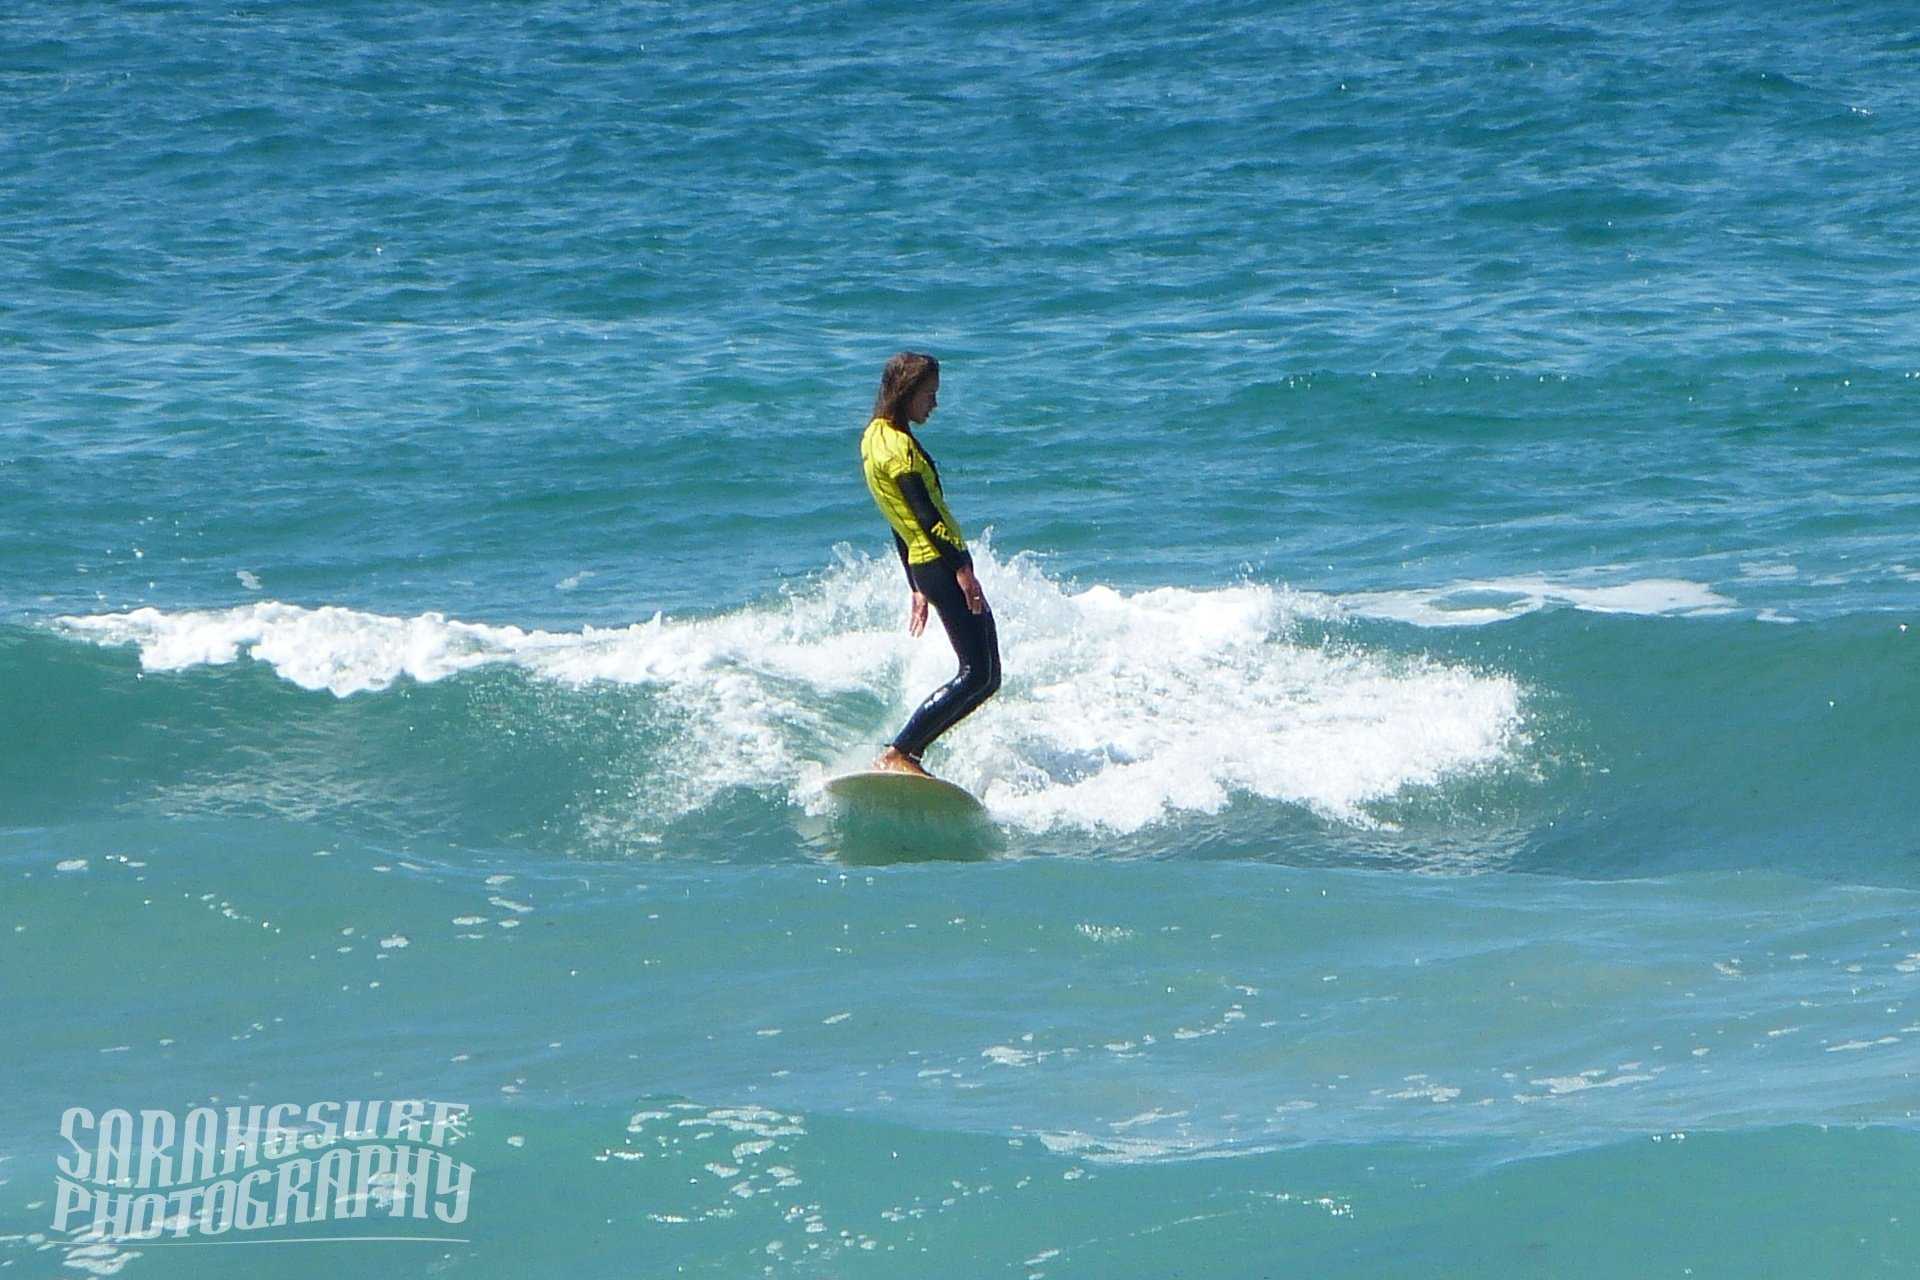 SARAHG SURF PHOTOGRAPHY's photo of Newquay-  Little Fistral